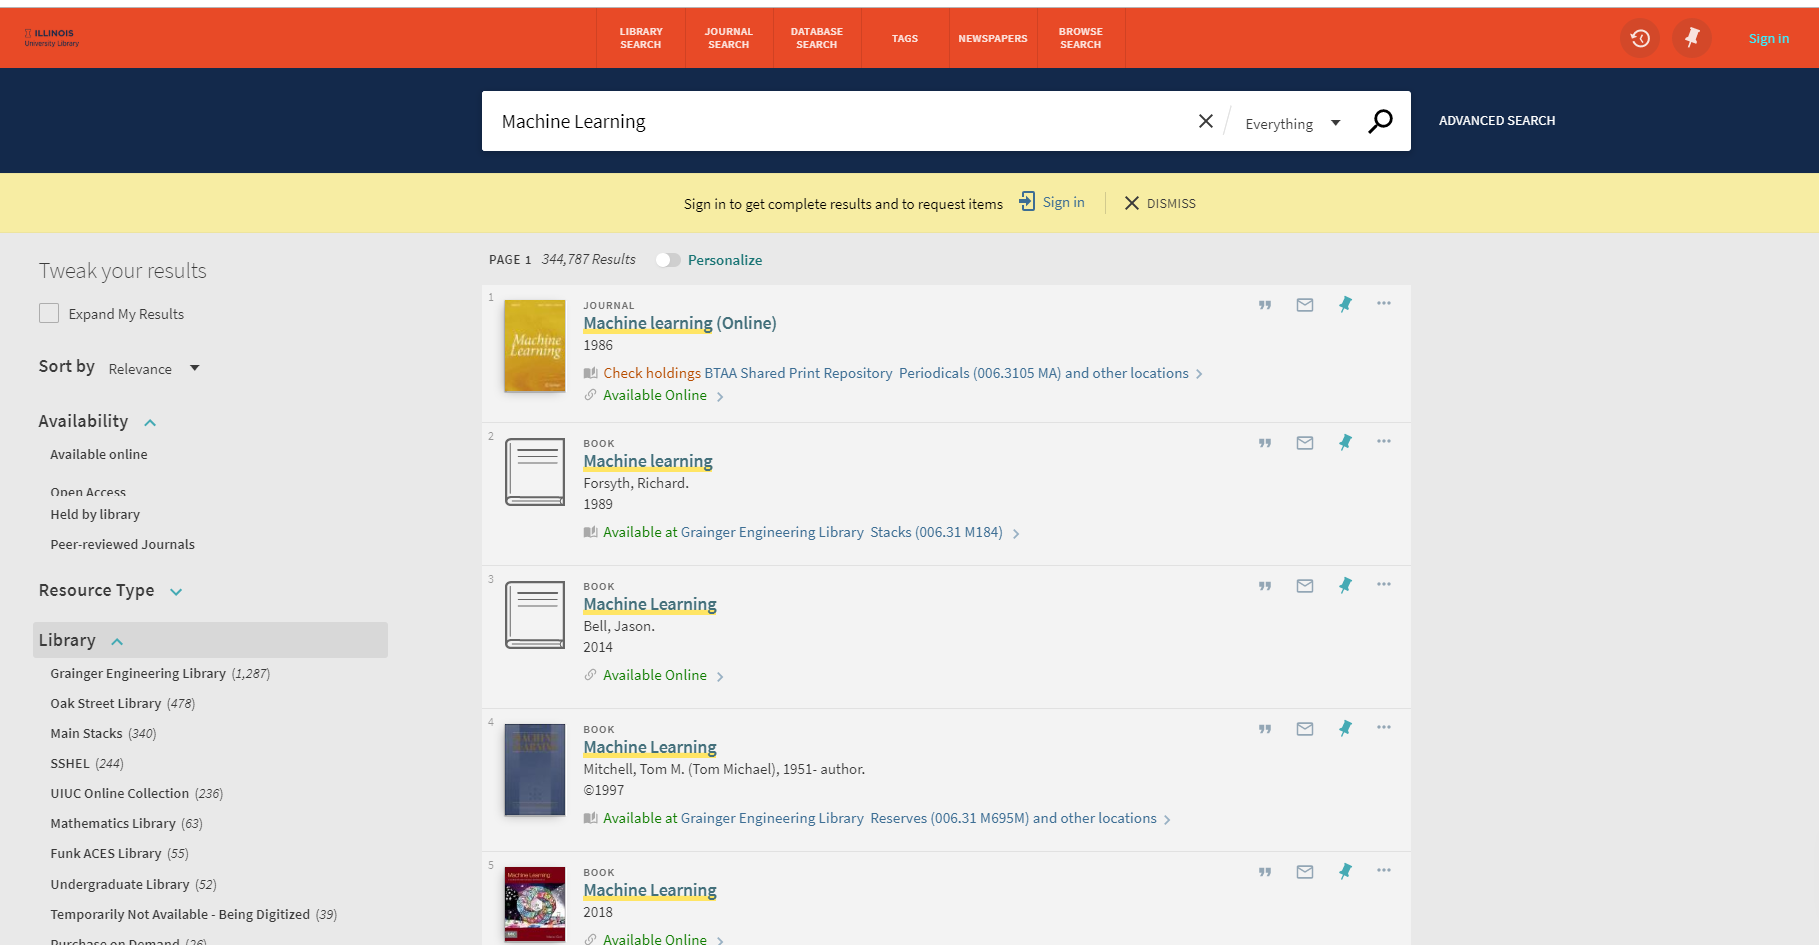 Library Office Notes | A Newsletter for University Library Faculty